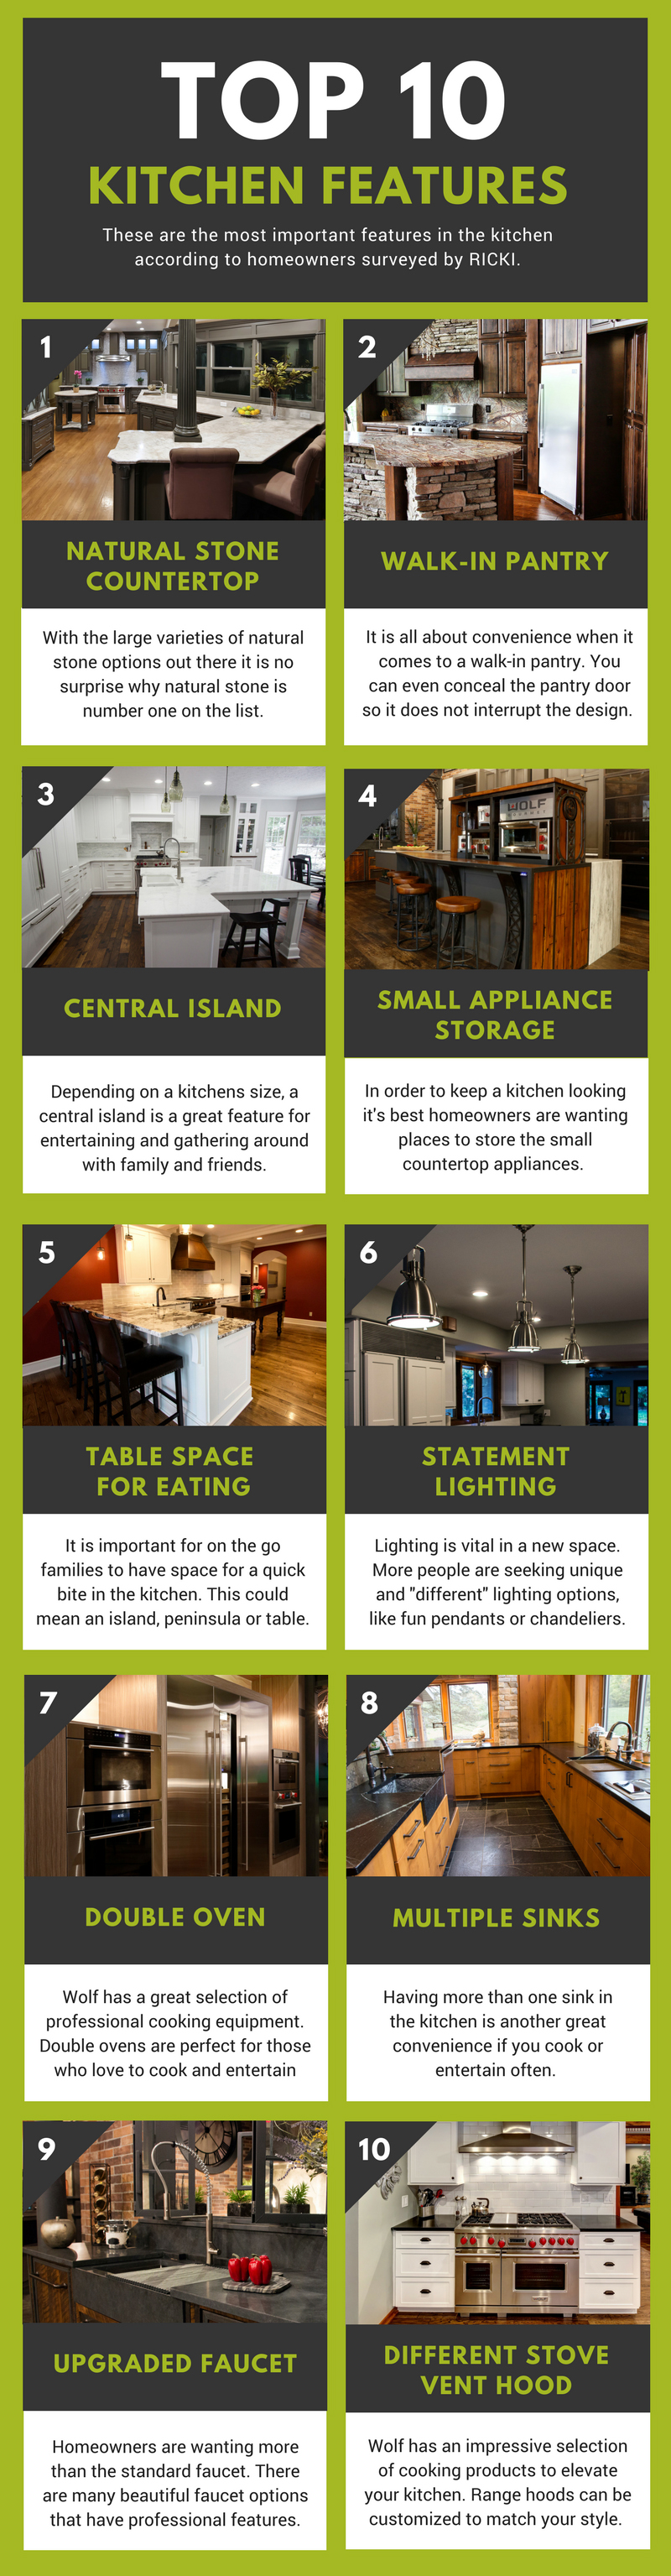 Top 10 Kitchen Features